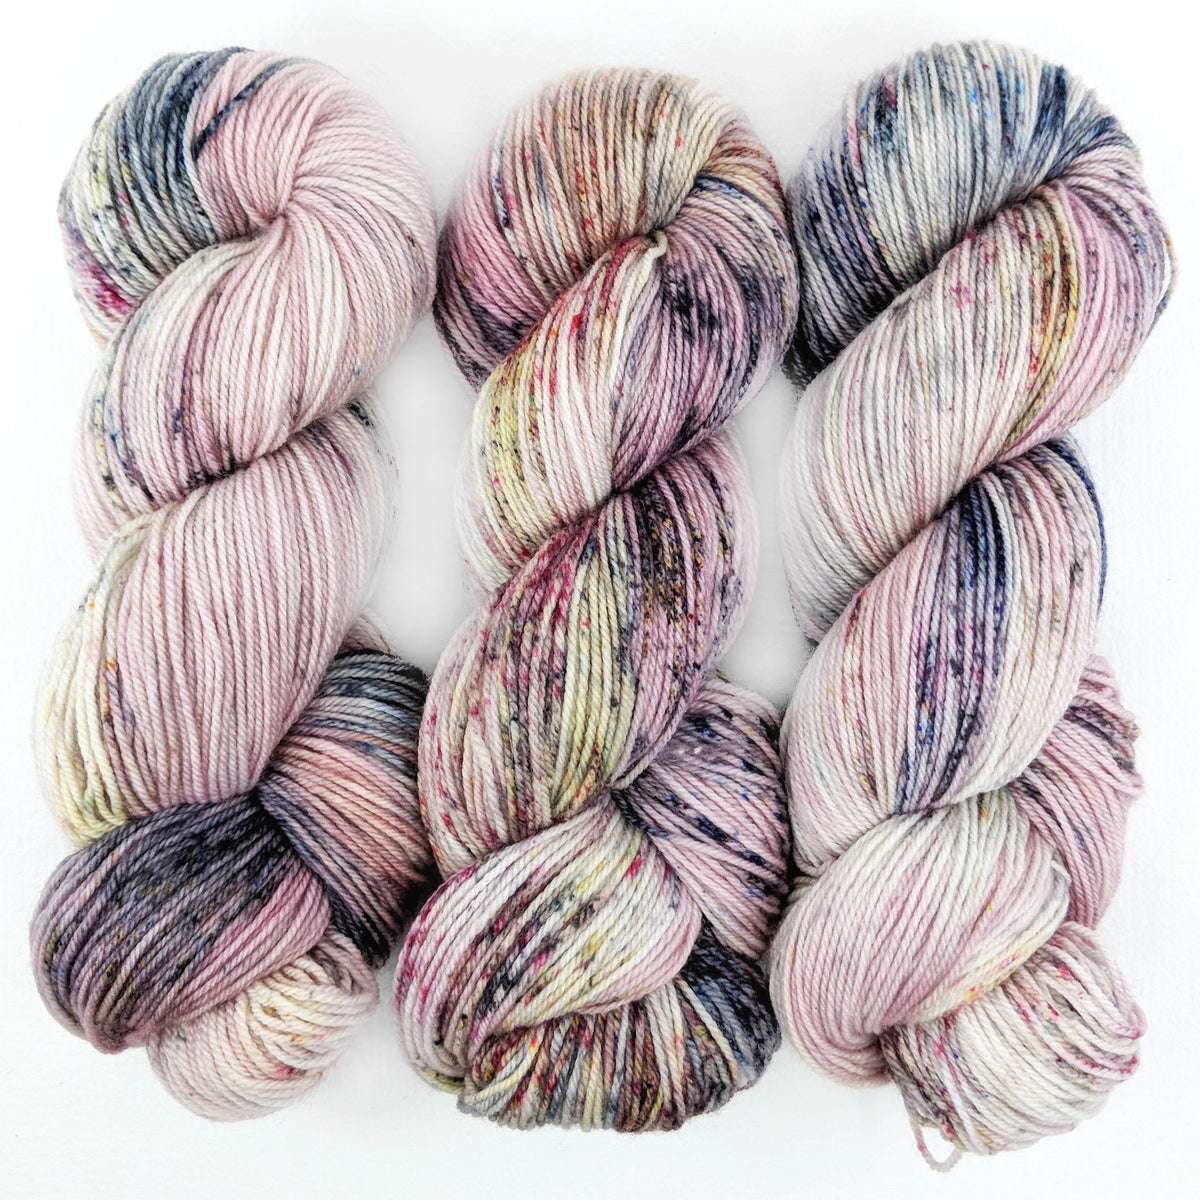 Antique - Merino Singles - Dyed Stock